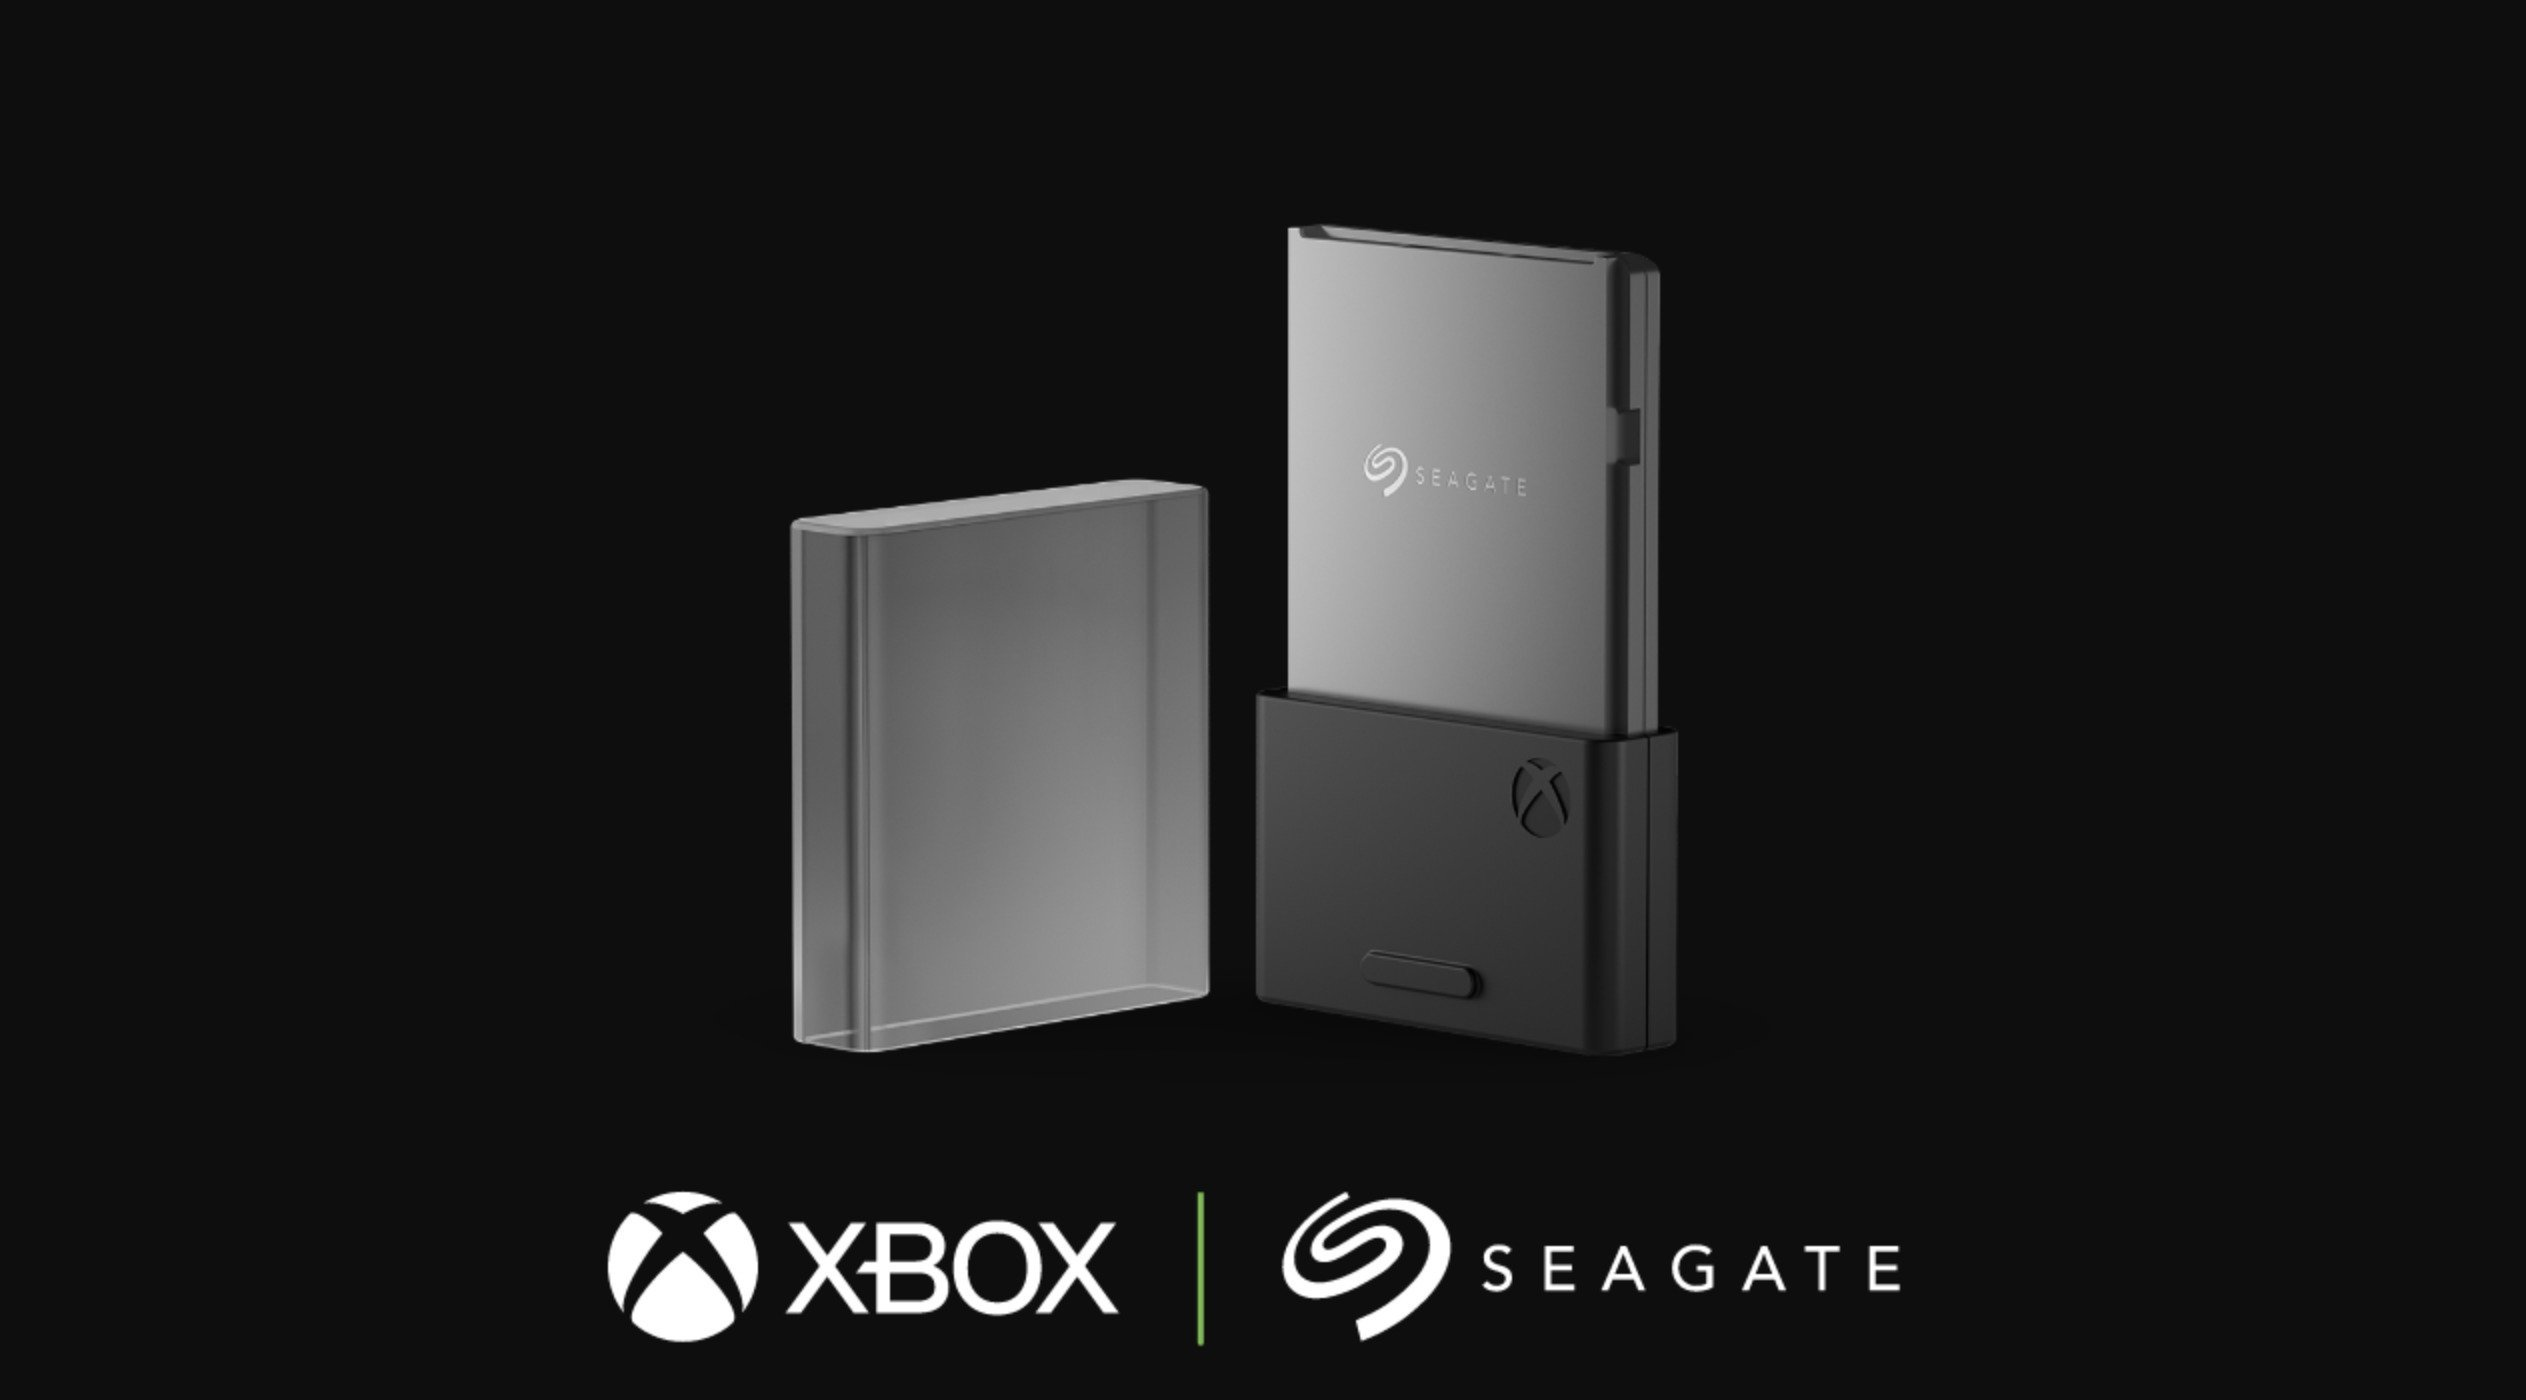 Carte d'extension de stockage Seagate, percée de Xiaomi en Europe et 5G en France – Tech'spresso